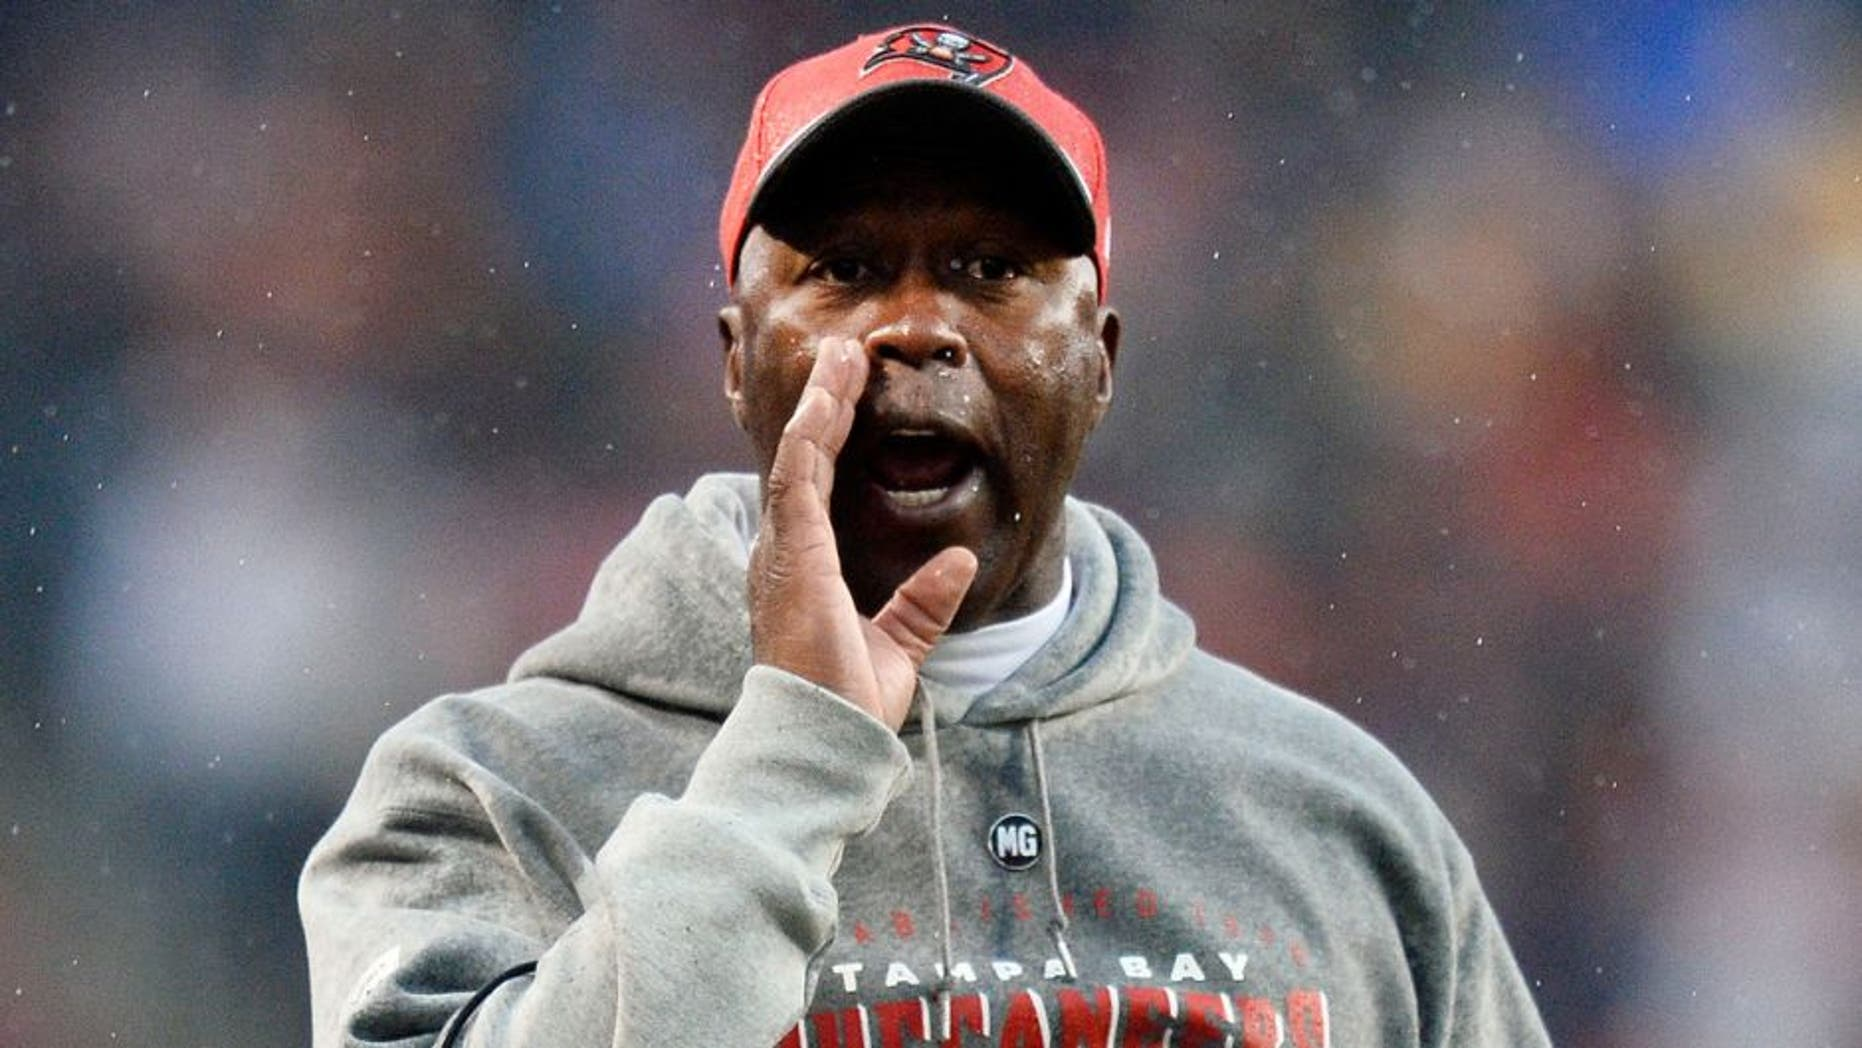 CHICAGO, IL - NOVEMBER 23: Head coach Lovie Smith of the Tampa Bay Buccaneers yells during the fourth quarter against the Chicago Bears on November 23, 2014 at Soldier Field in Chicago, Illinois. The Bears defeated the Buccaneers 21-13. (Photo by Brian Kersey/Getty Images)